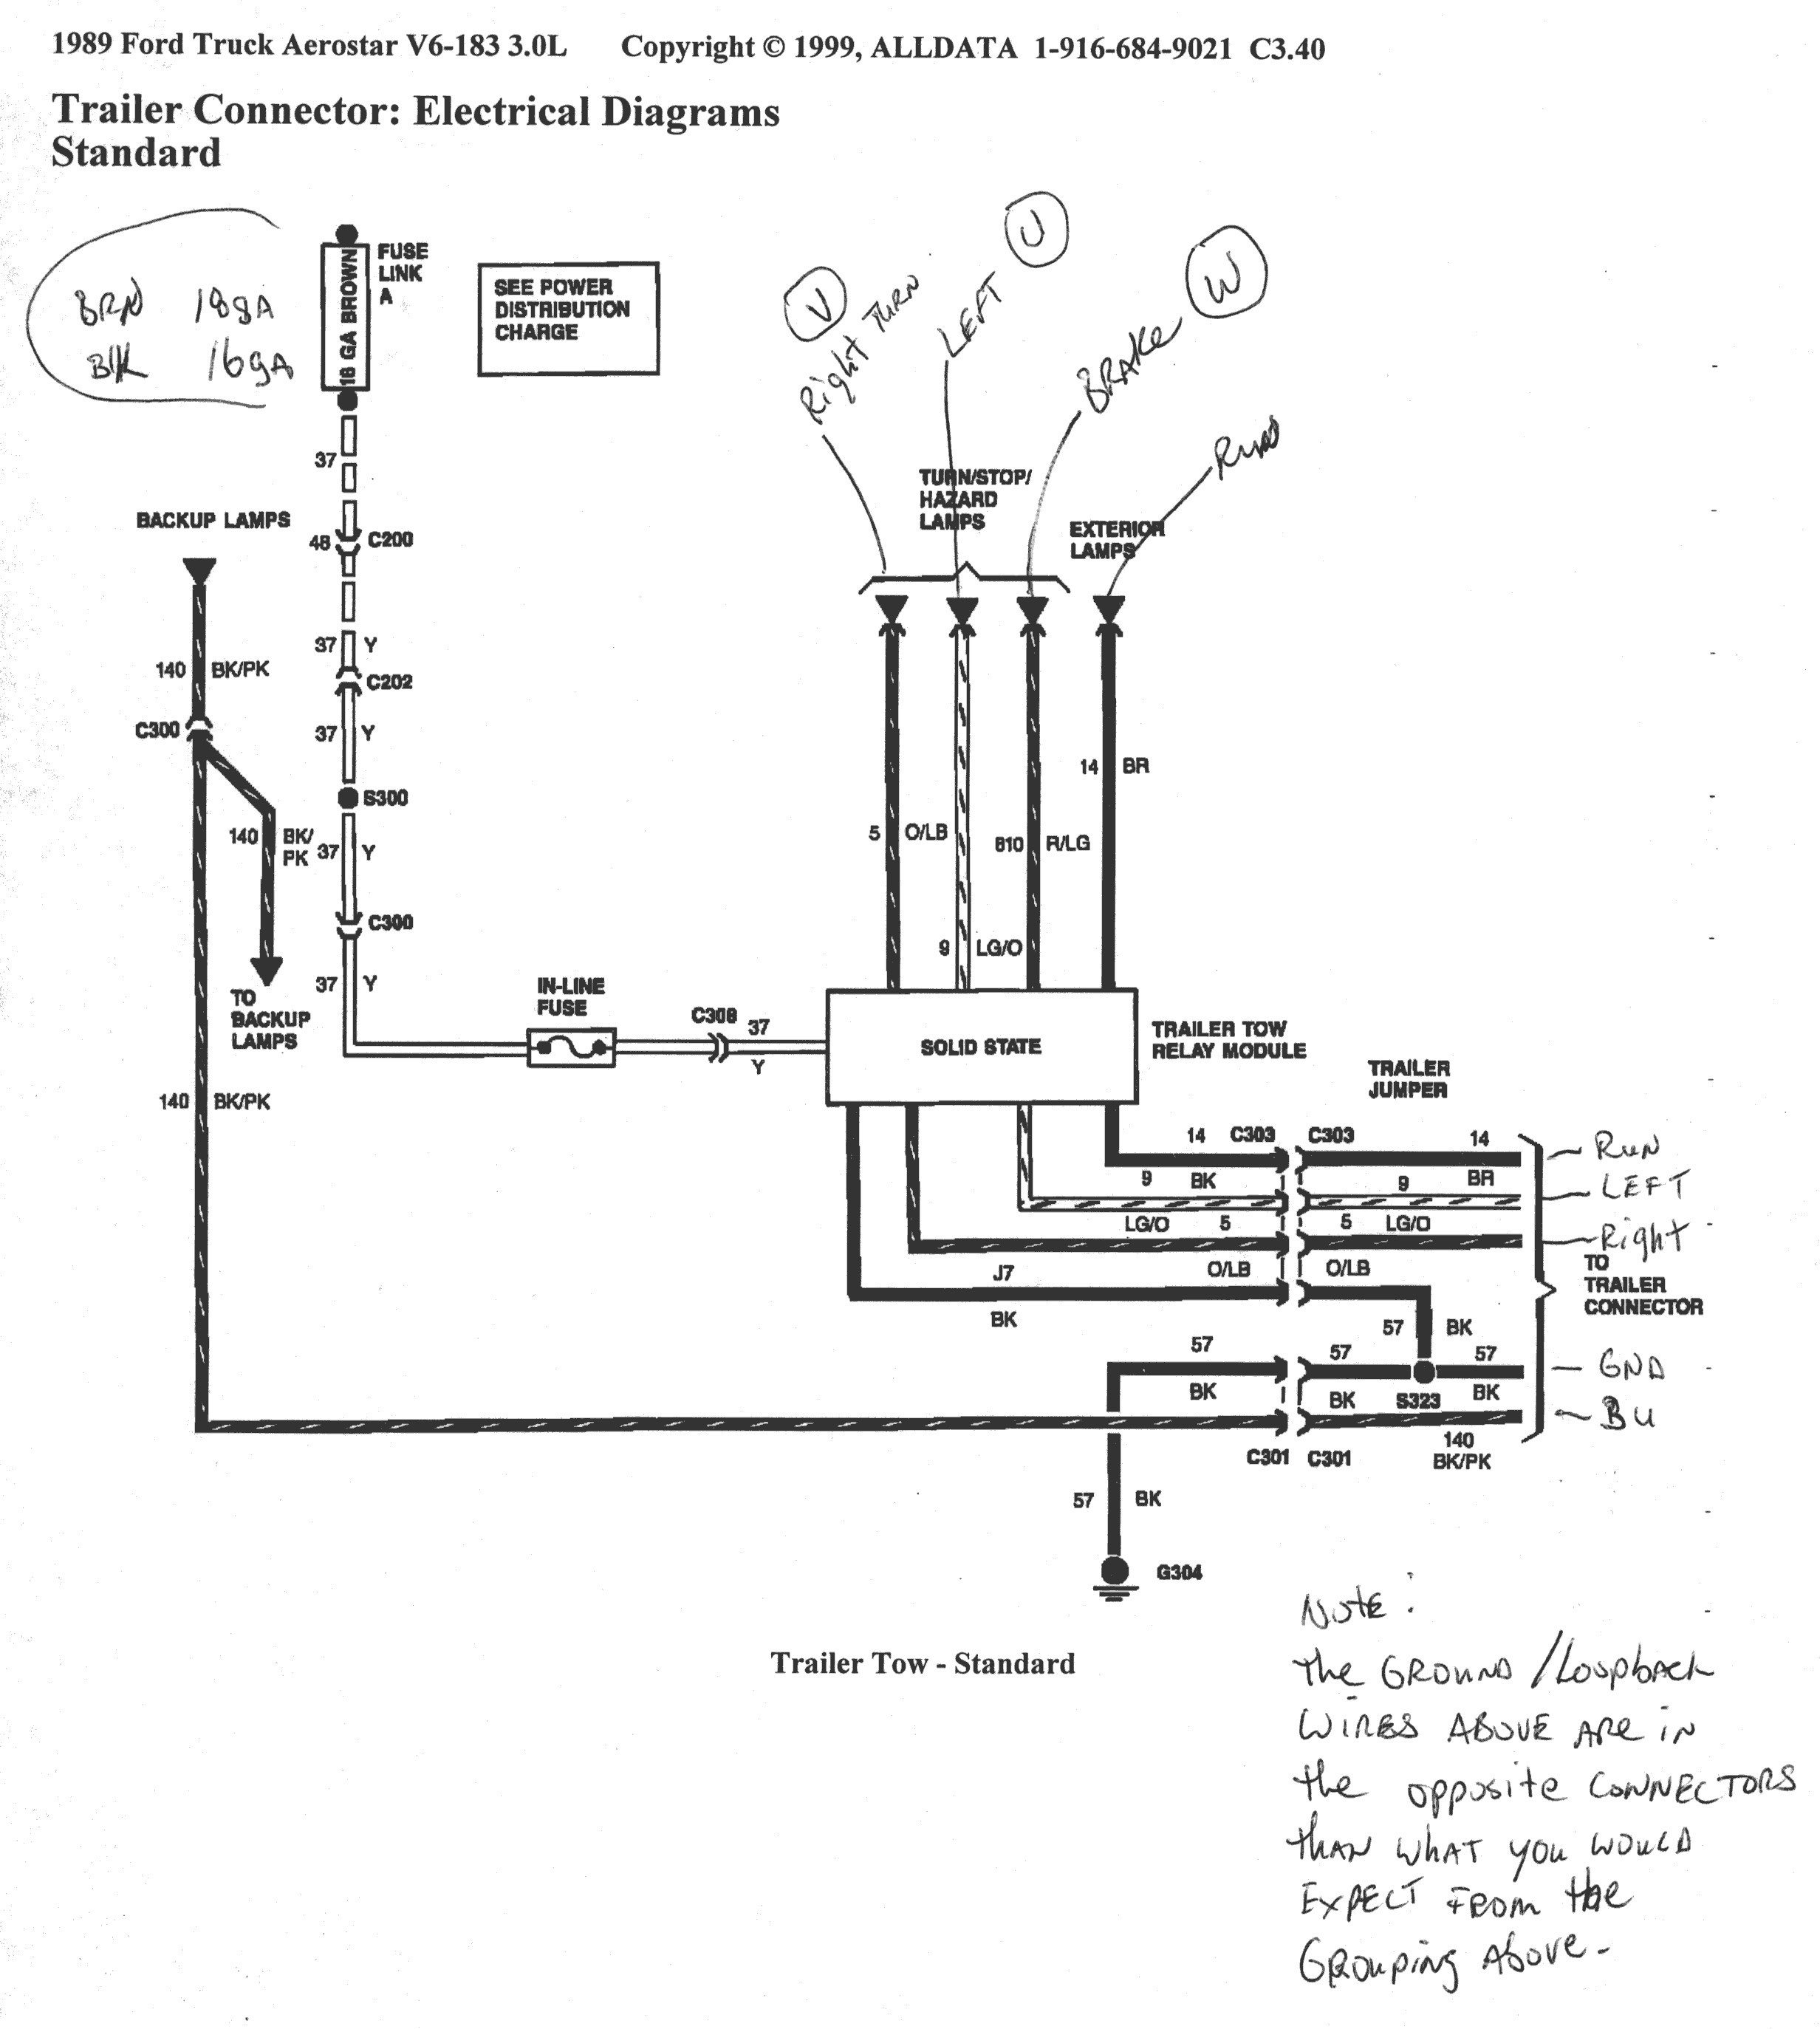 7 Pin Trailer Connector Plug Wiring Utility With Ford F250 Diagram 6